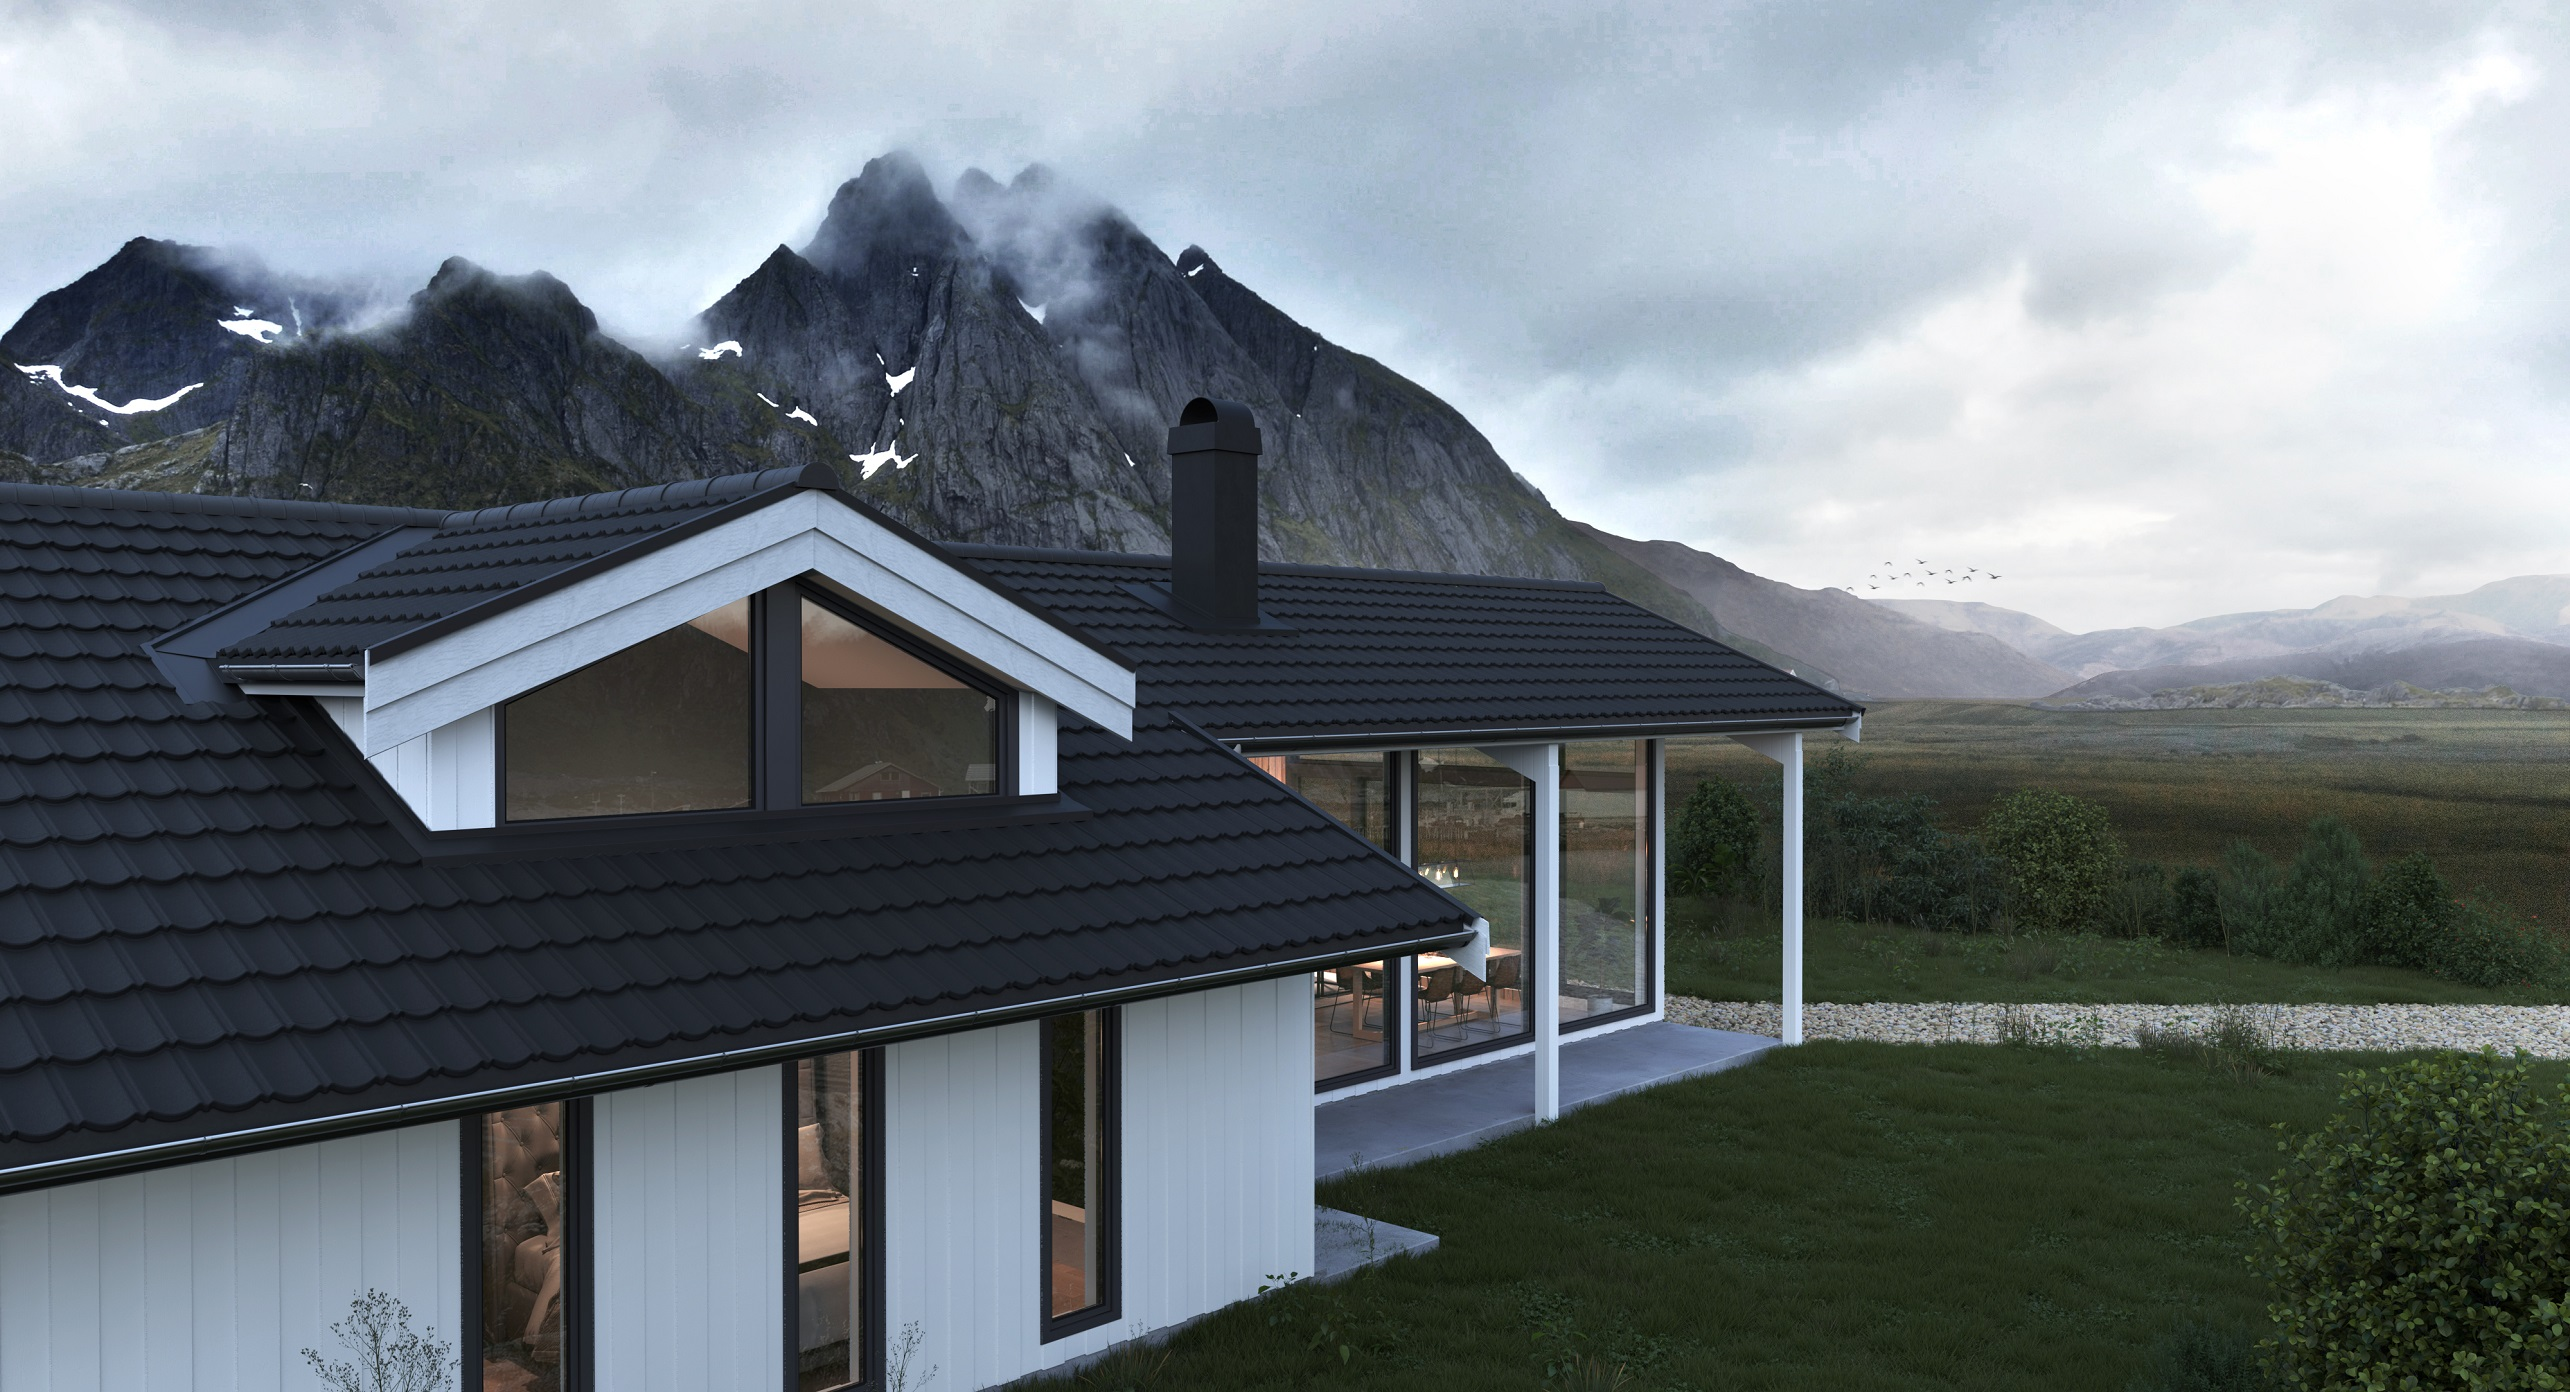 Bmi Aerodek Lightweight Metal Roof Tiles For New Builds And Renovations